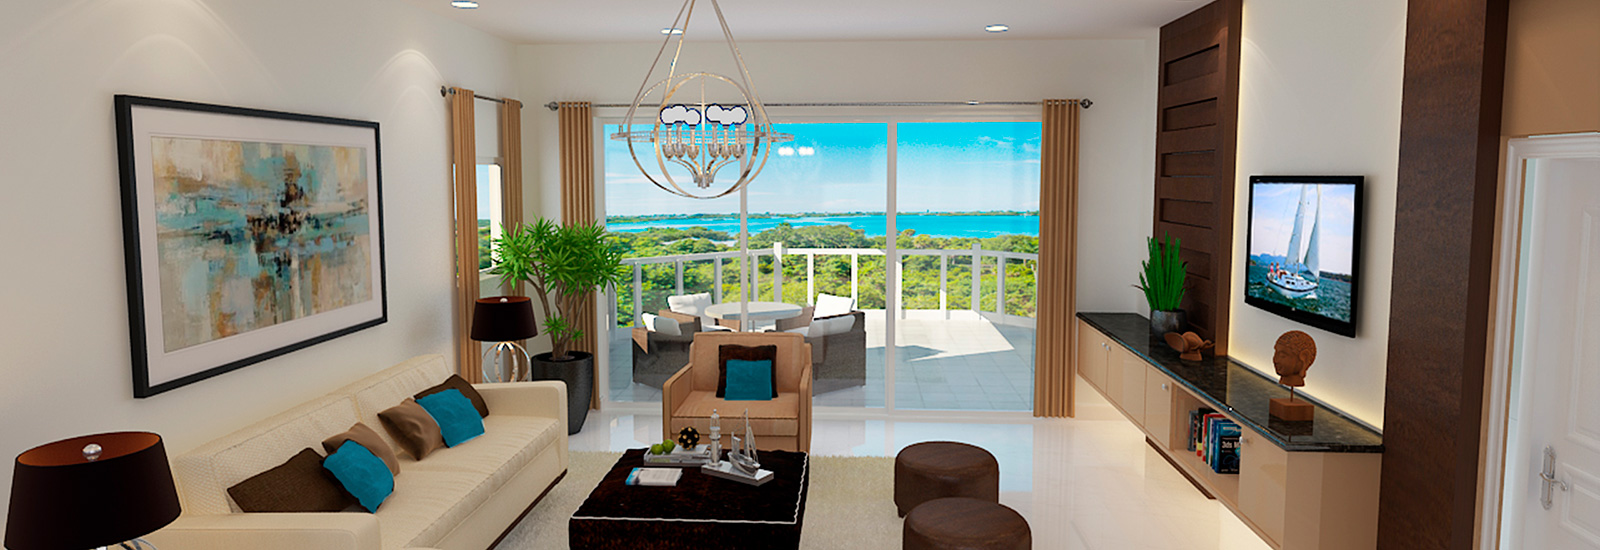 1600x550-EdgewaterHB-living_view.jpg